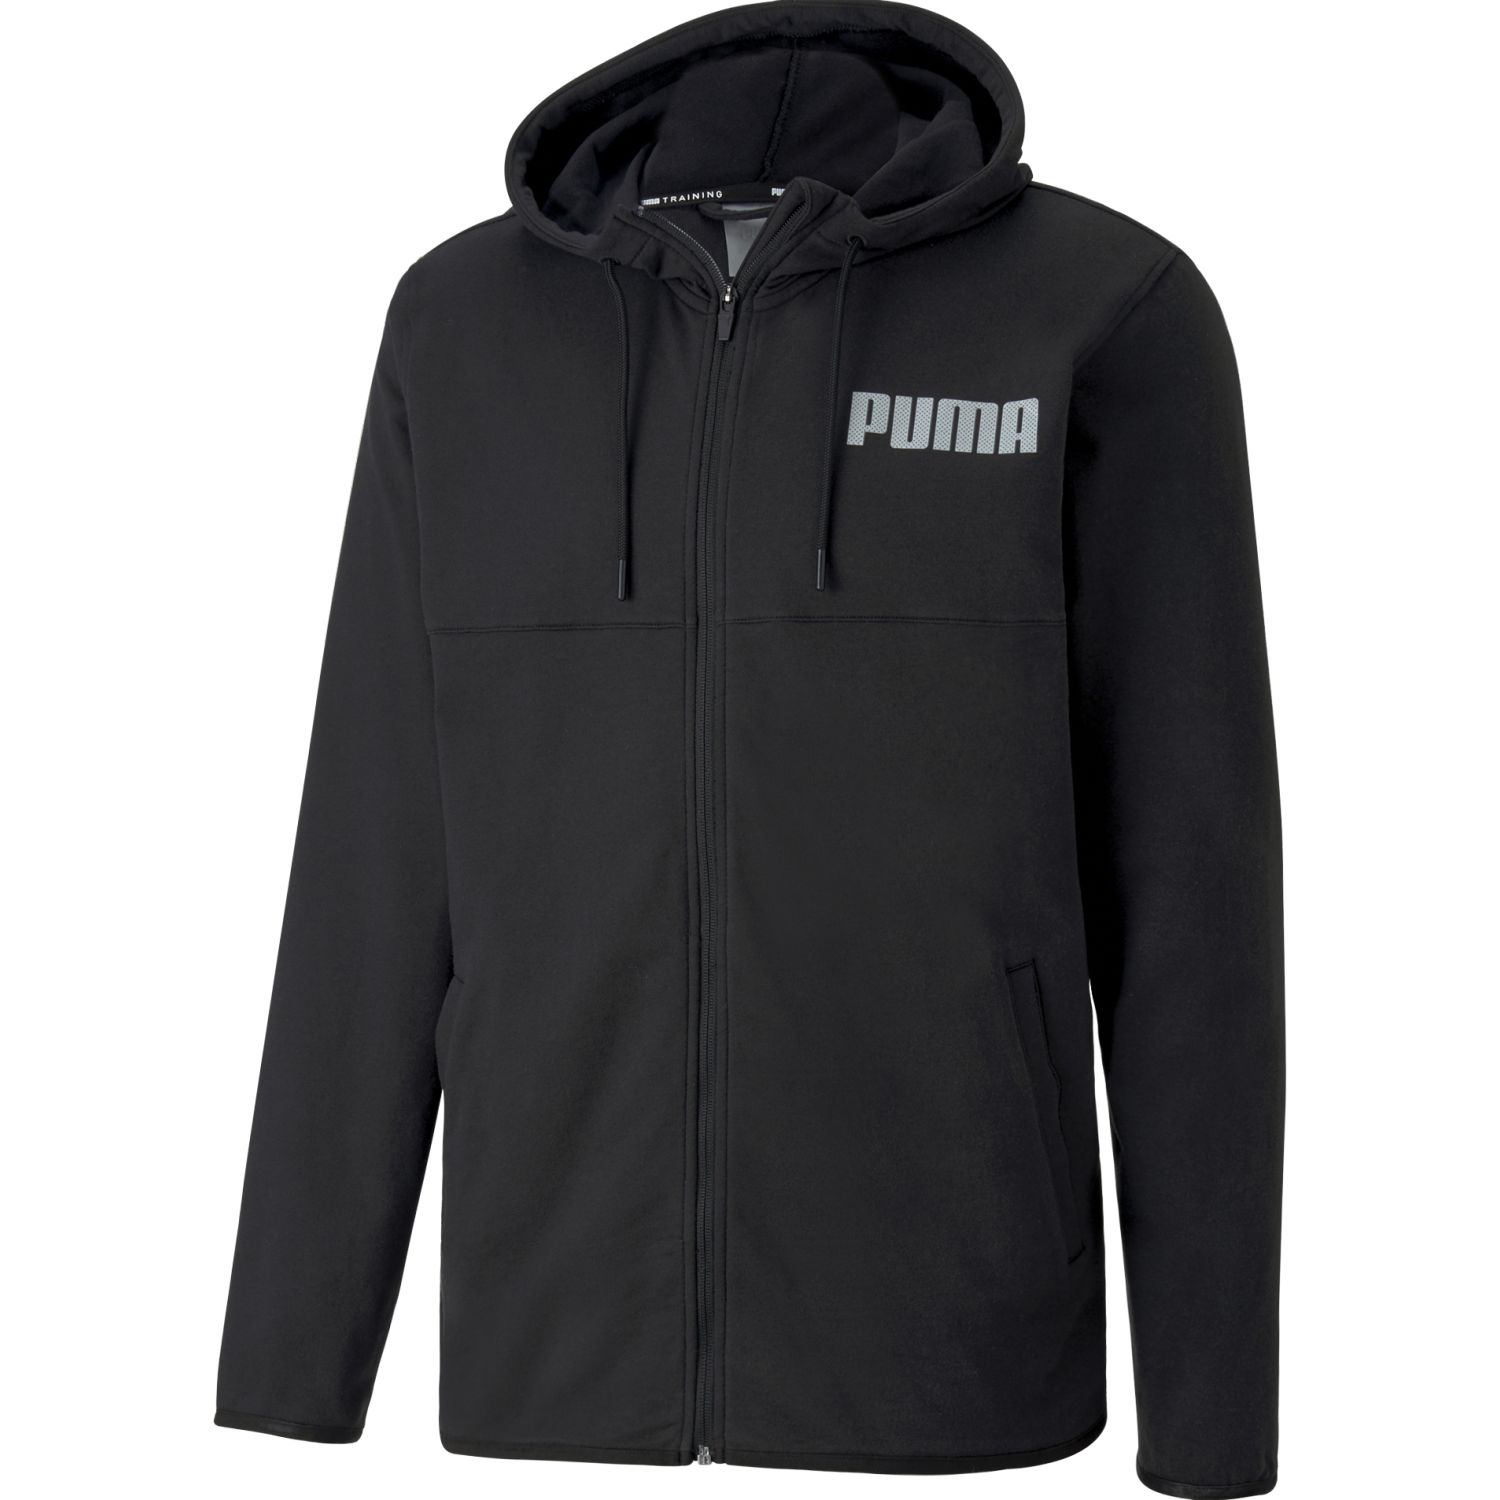 Puma Collective Warm Up Jacket Negro Casacas de Atletismo